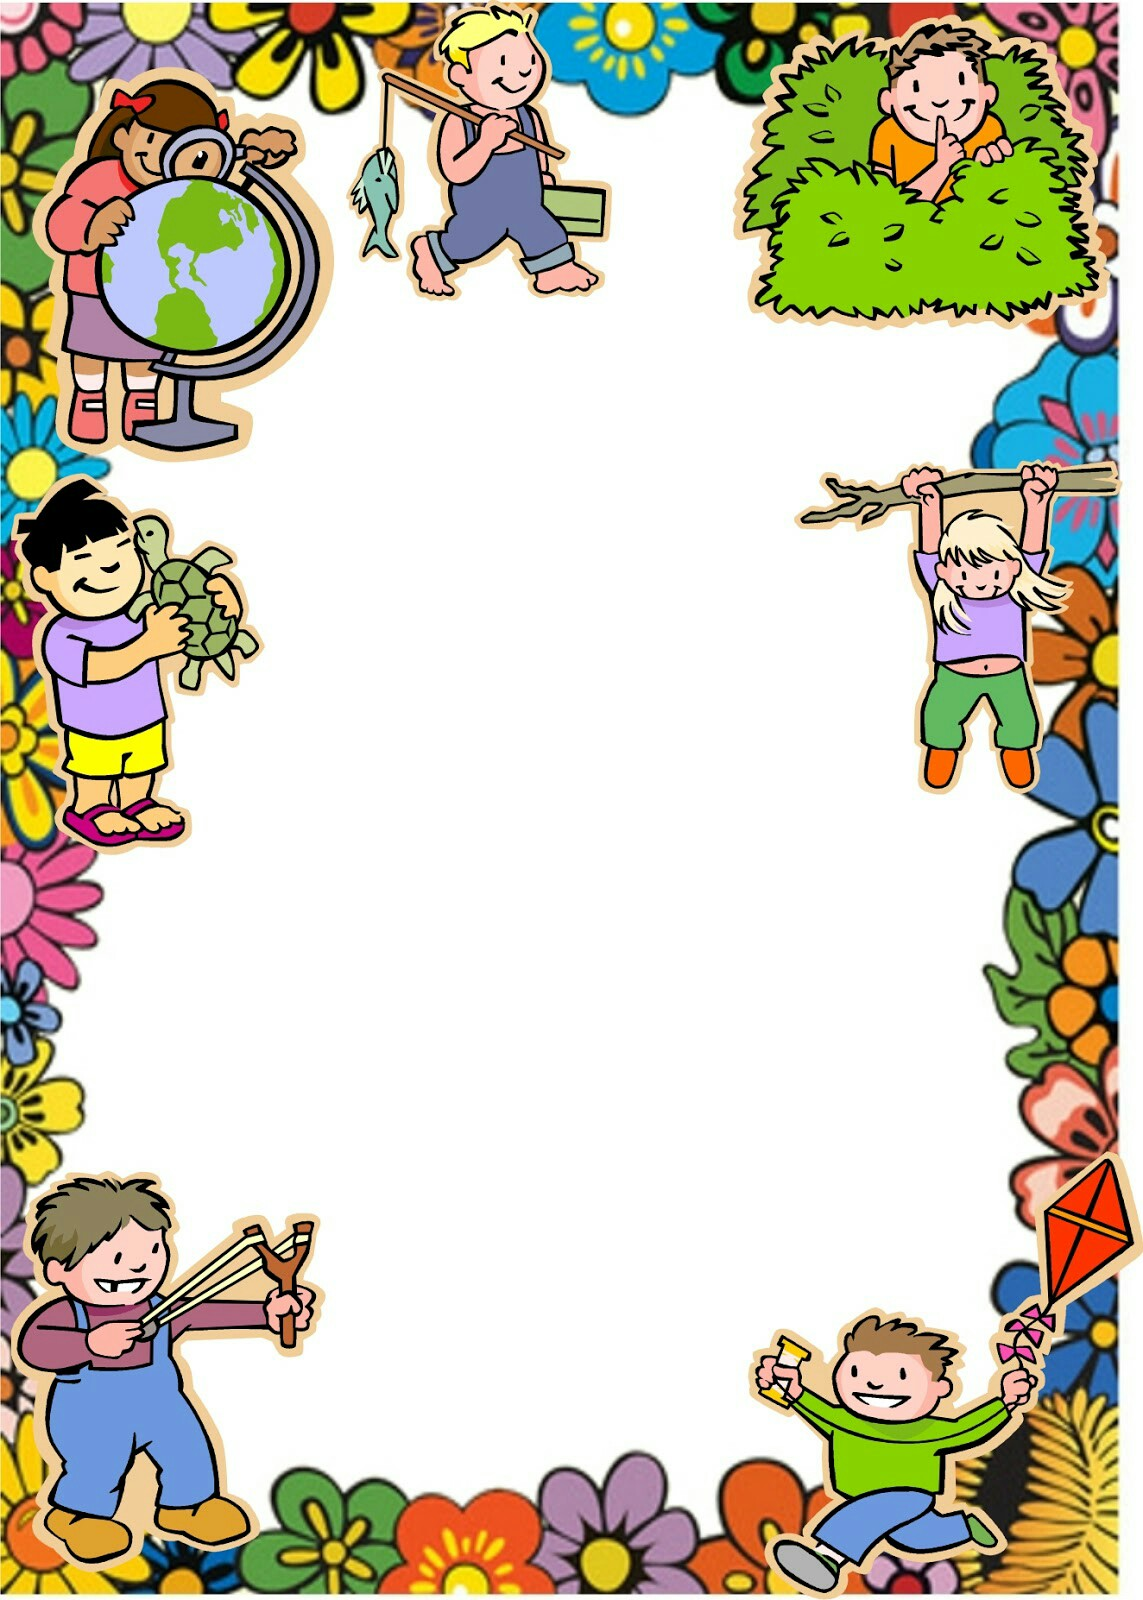 Park clipart border Art A downloads org/download/camping camping